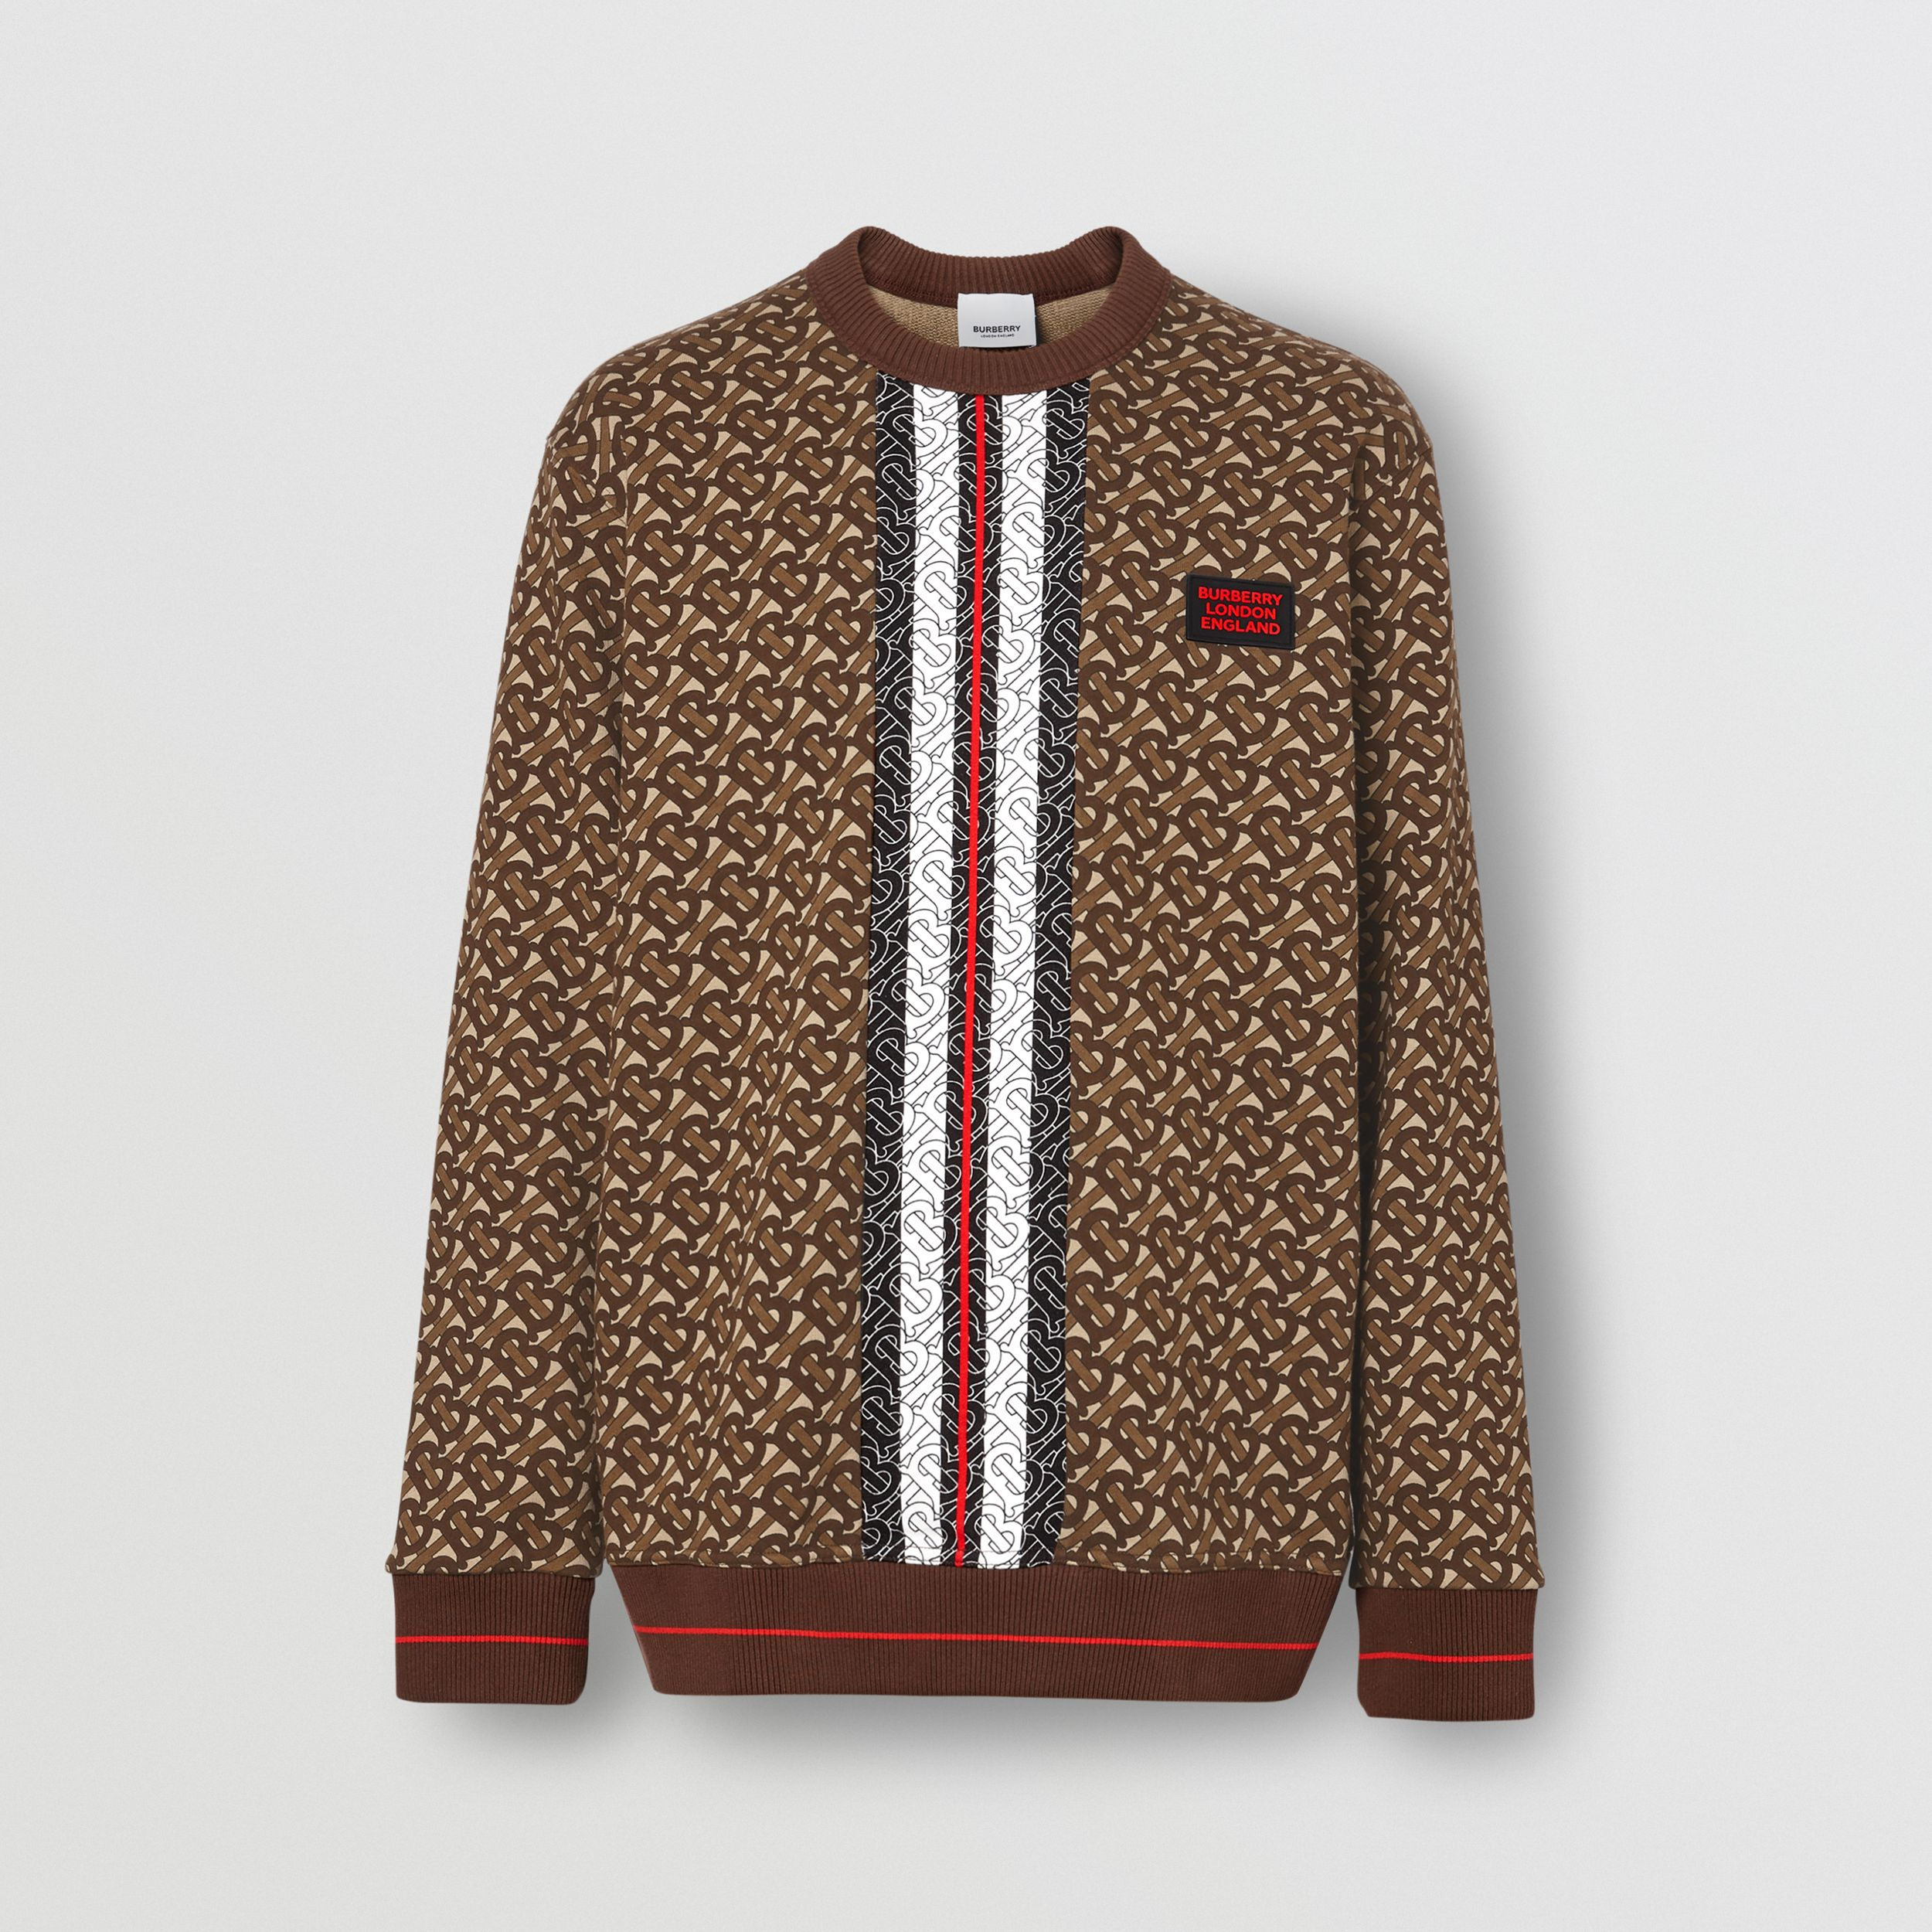 Monogram Stripe Print Cotton Sweatshirt in Bridle Brown - Men | Burberry United States - 4